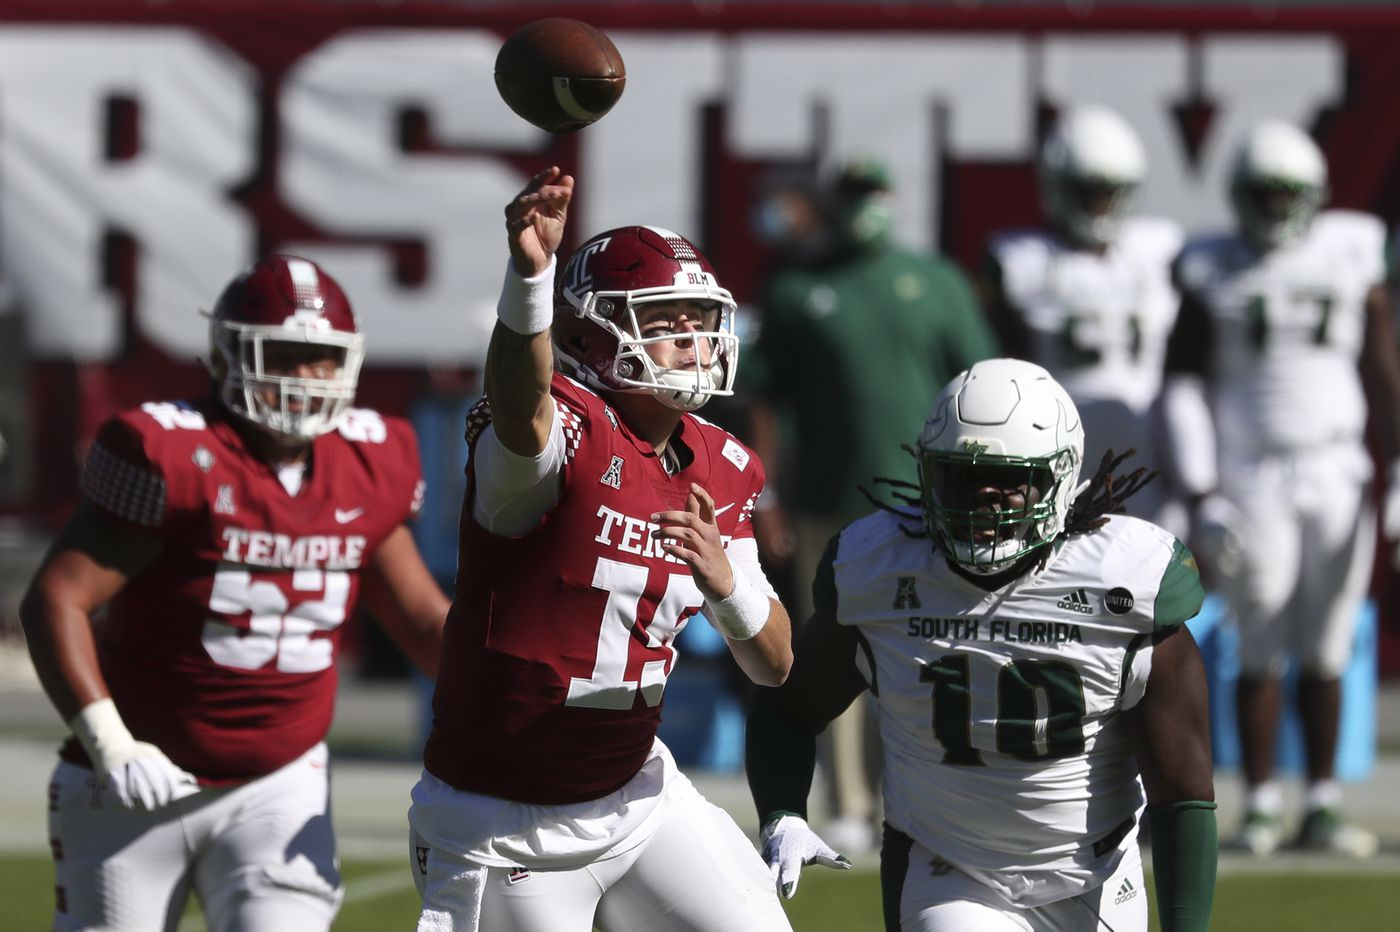 Observations from Temple's 39-37 win over South Florida